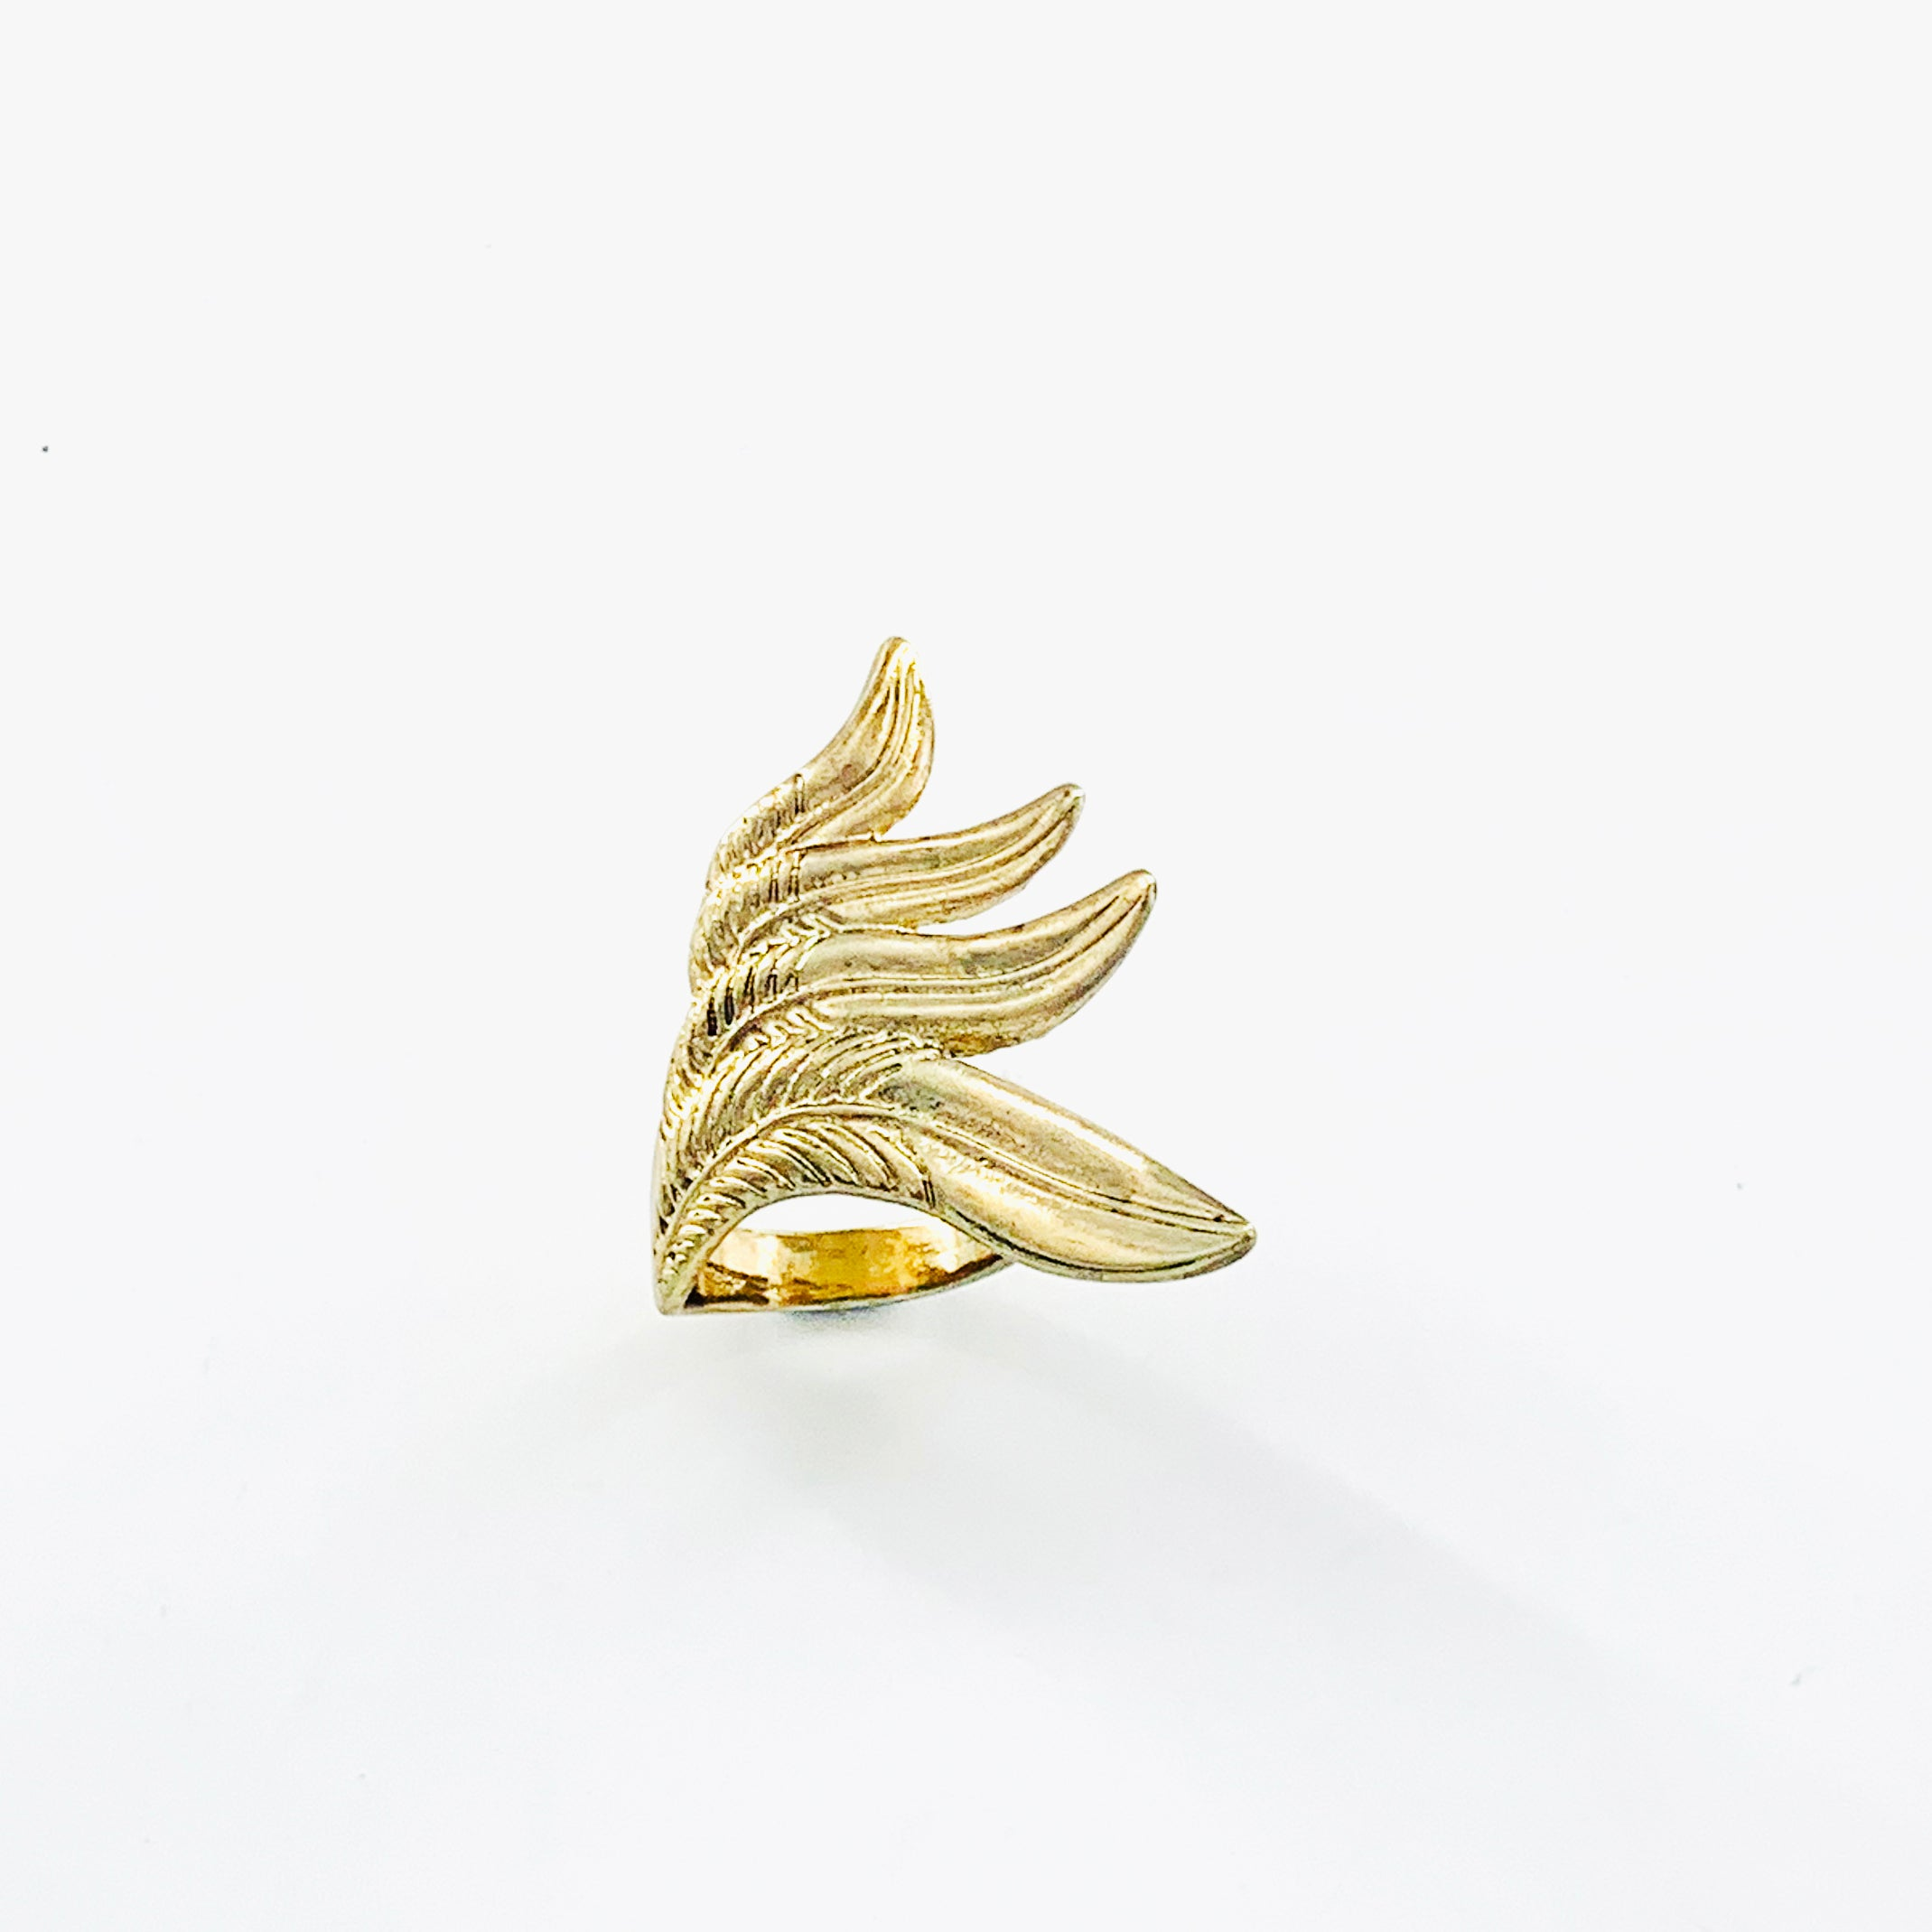 Large ring with feathered wings design